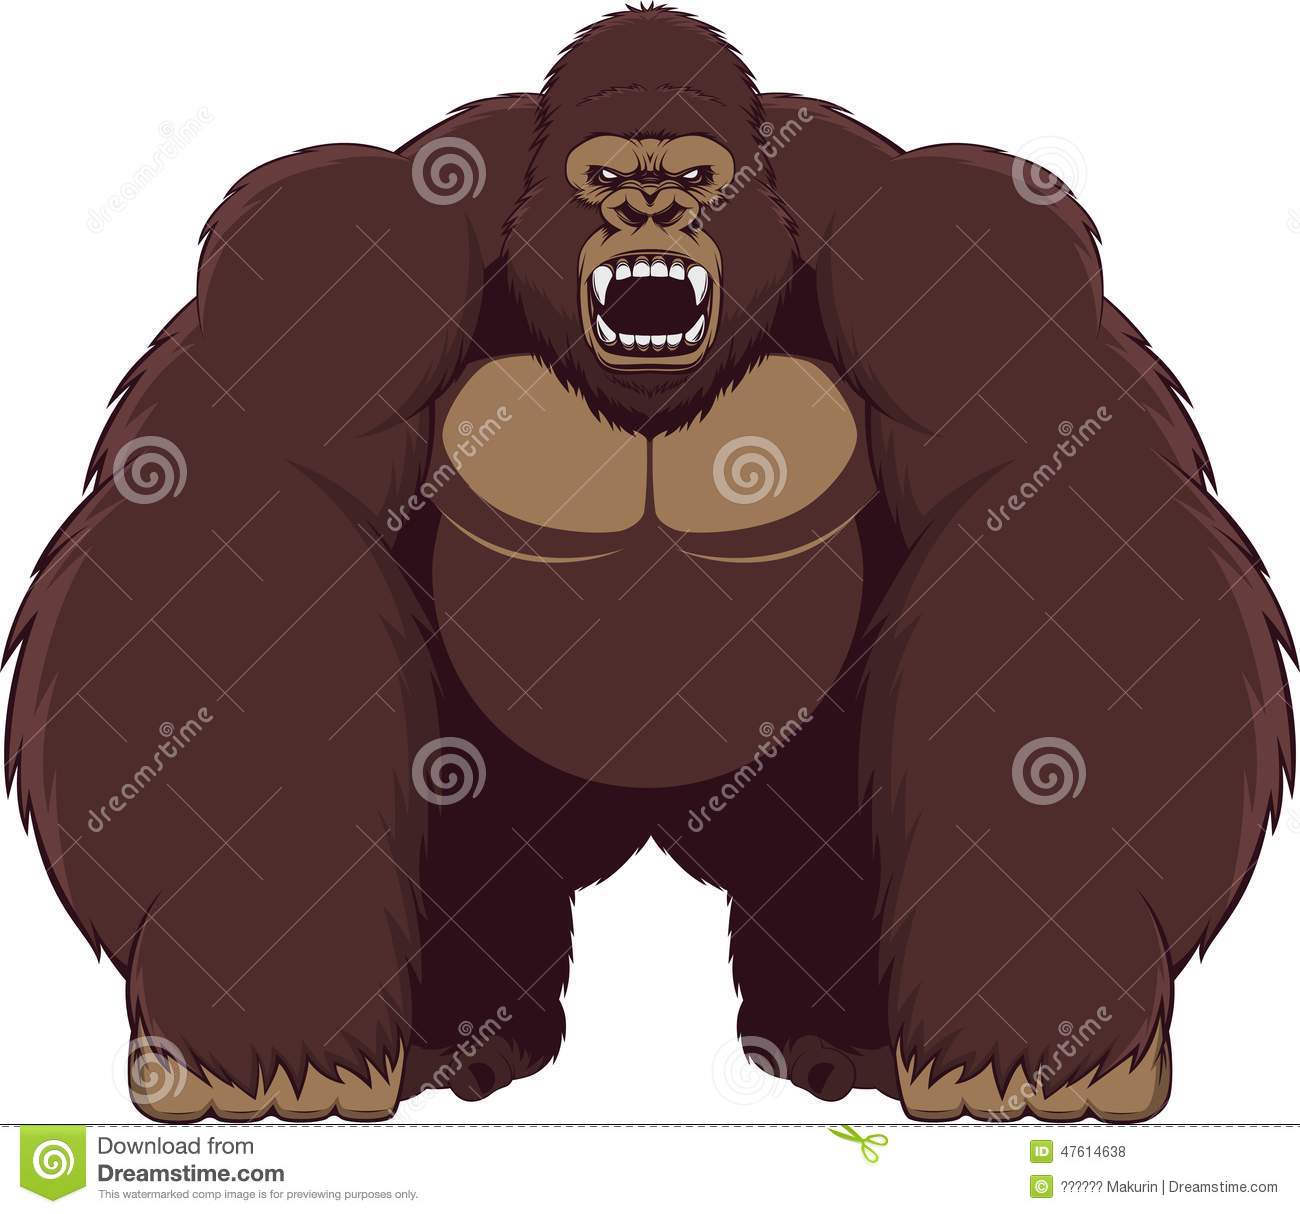 Angry ferocious gorilla vector illustration